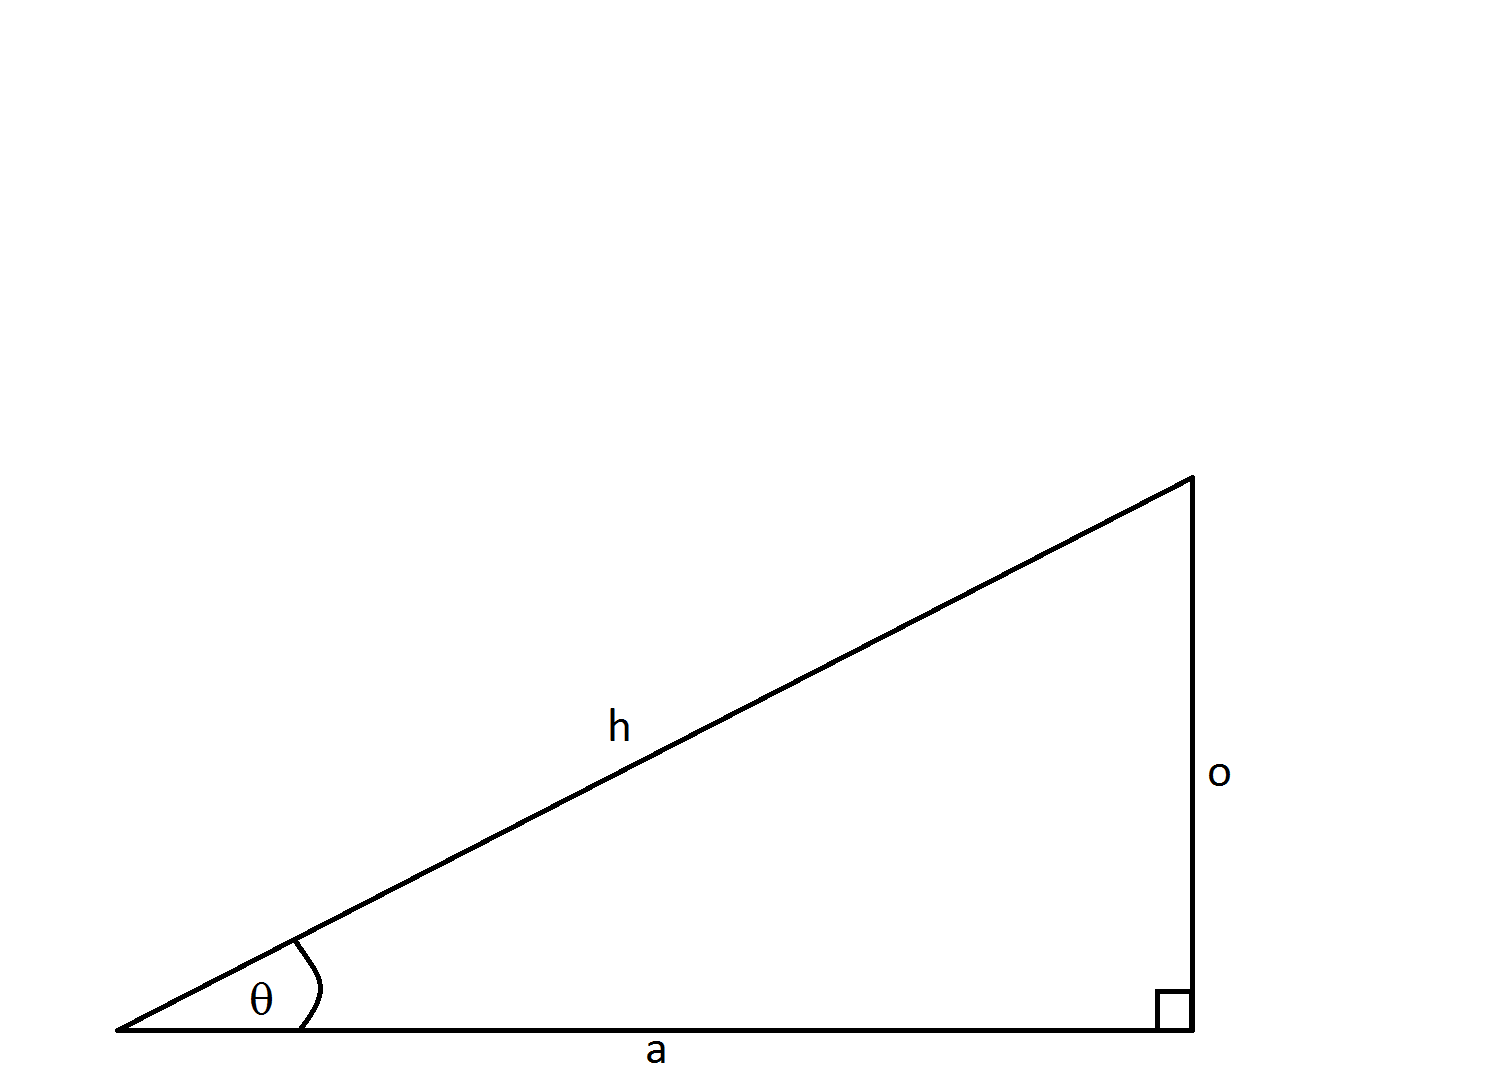 How To Find The Length Of The Hypotenuse Of A Right Triangle Pythagorean Theorem Basic Geometry